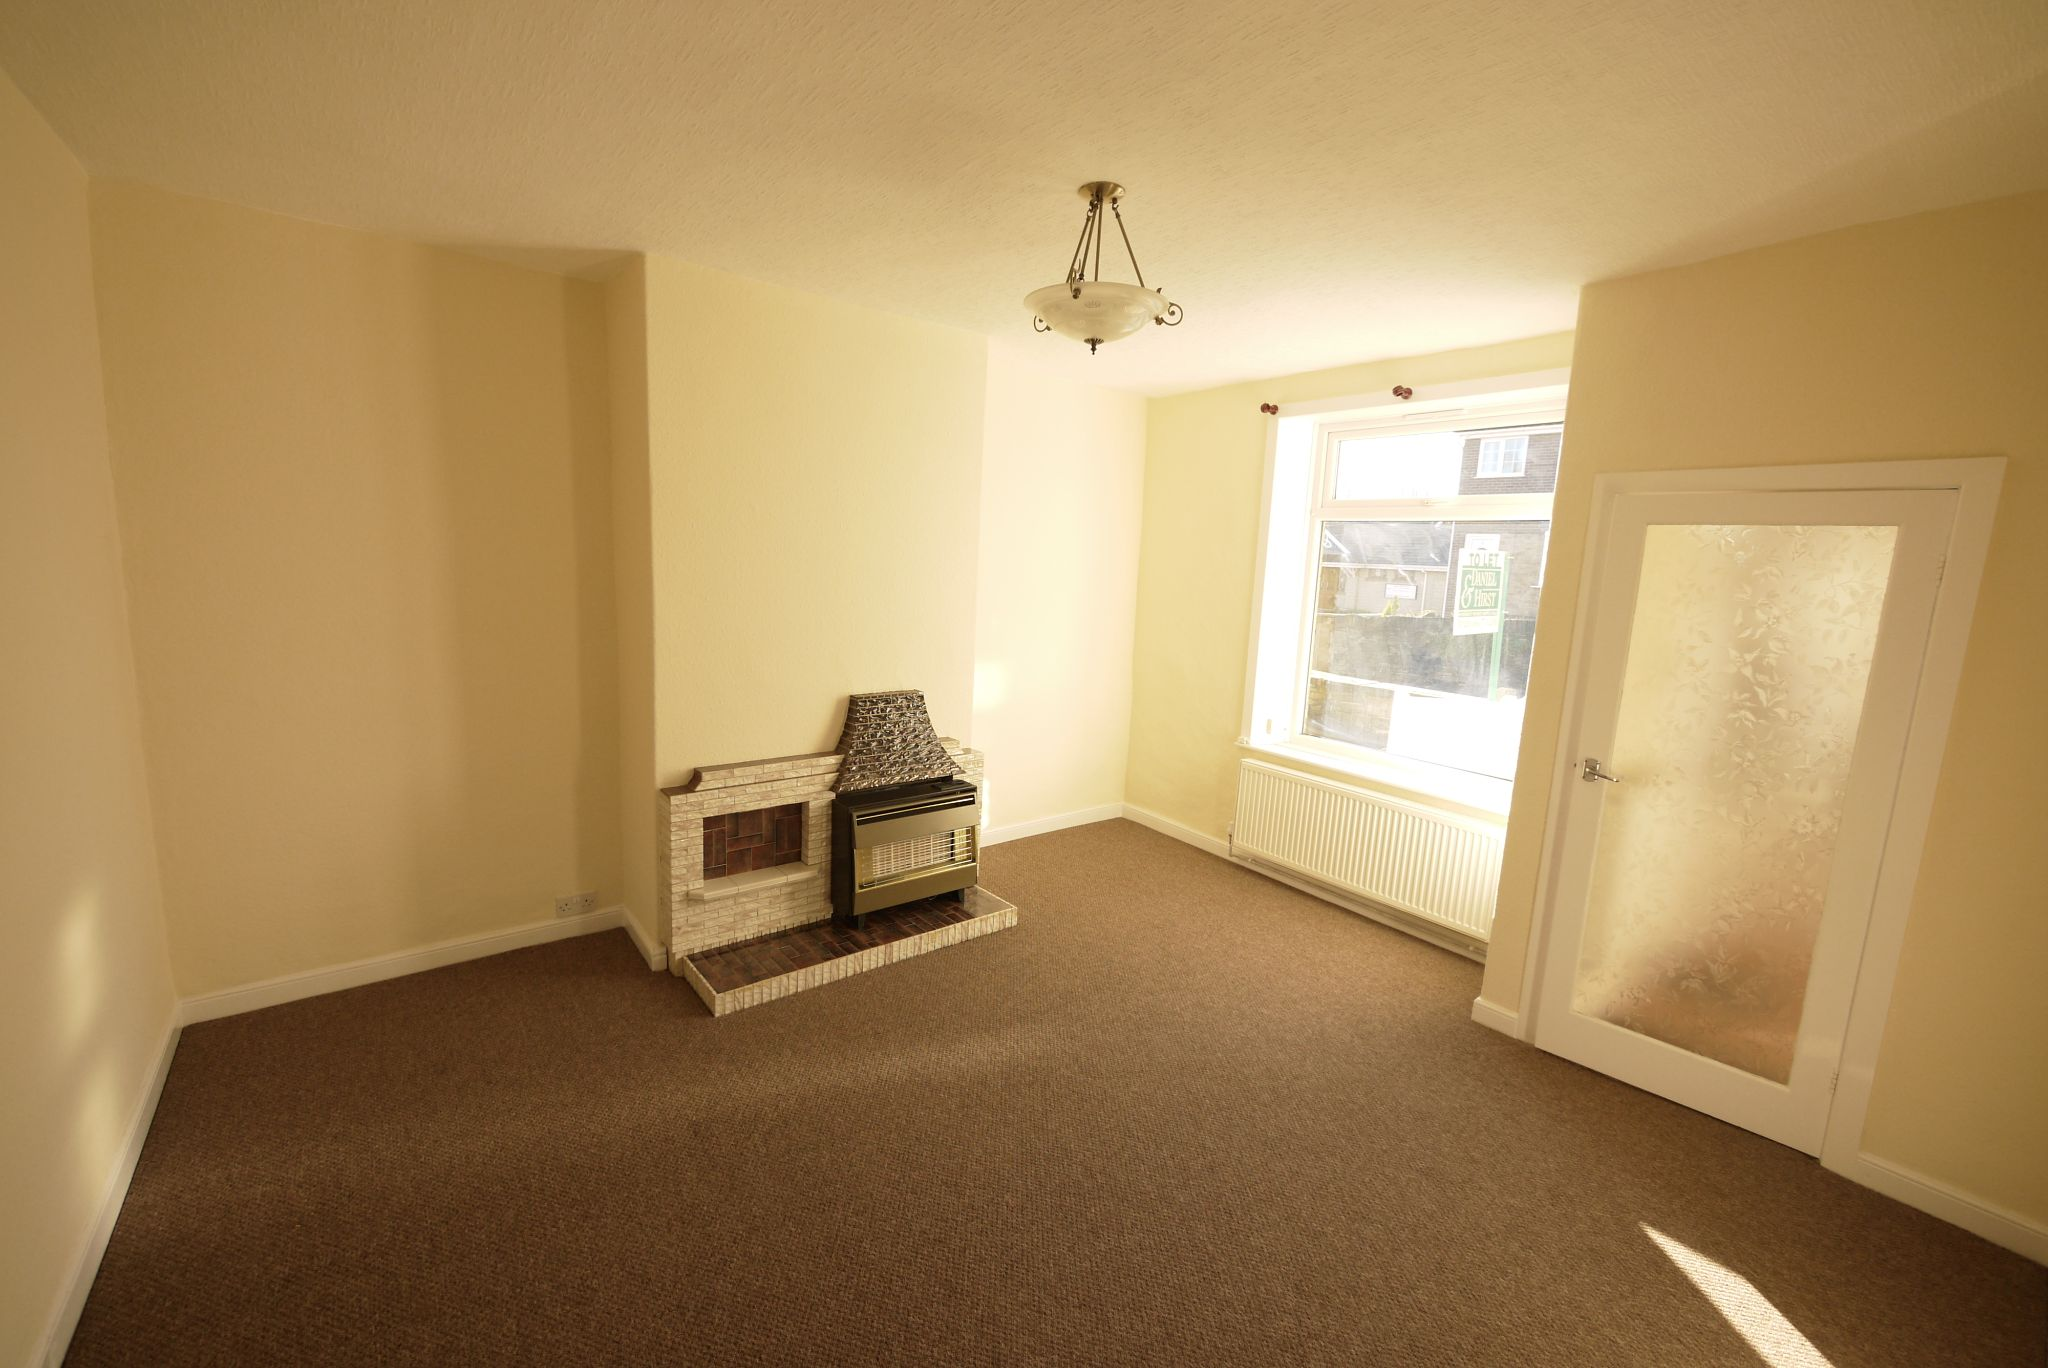 1 bedroom mid terraced house Let in Brighouse - Lounge.